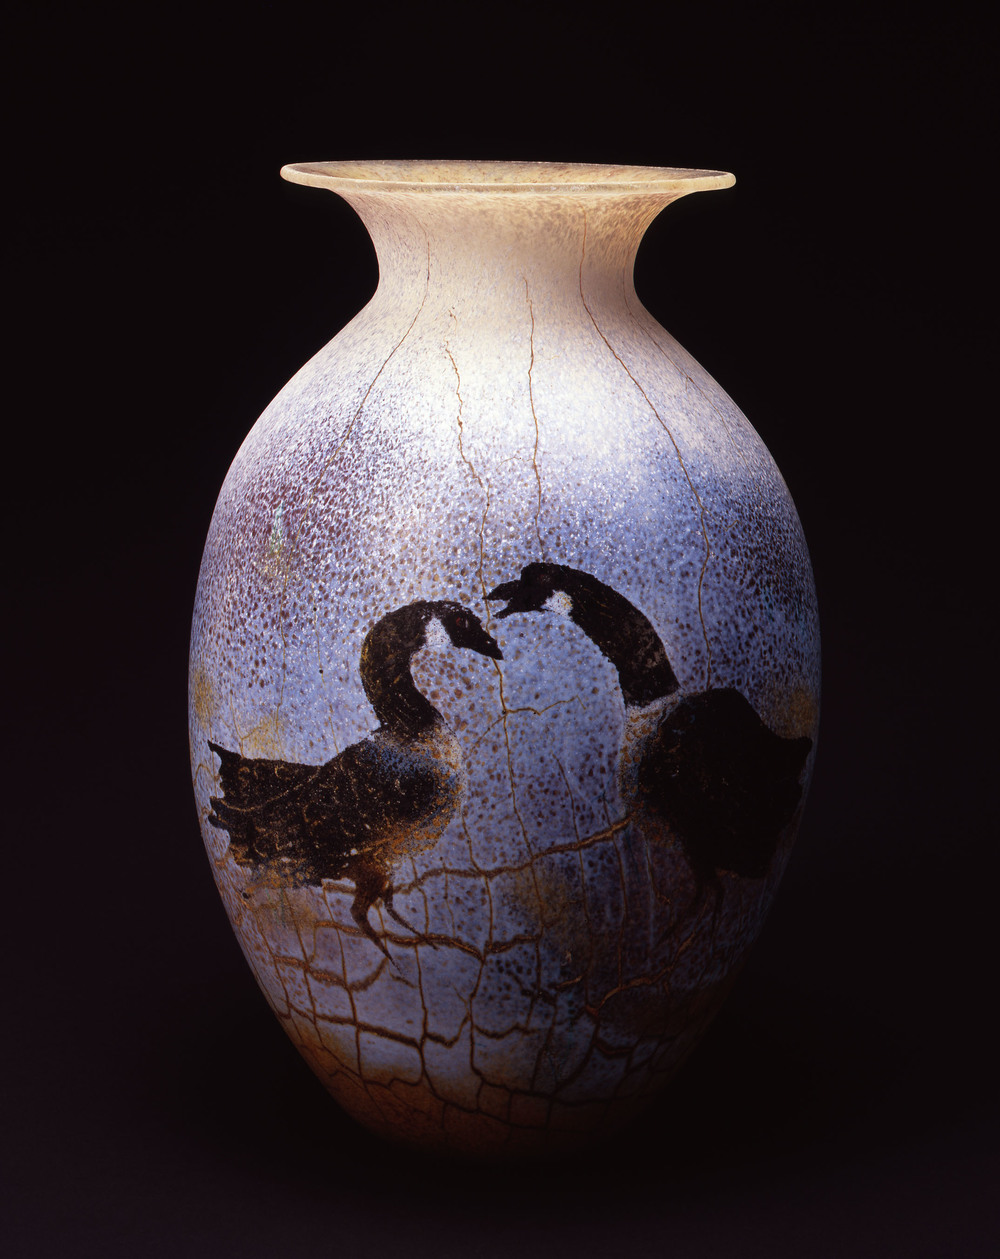 William Morris,  Vessel with Greater Canada Geese  (2004, glass, 16 1/2 x 10 3/4 x 10 3/4 inches), WM.37